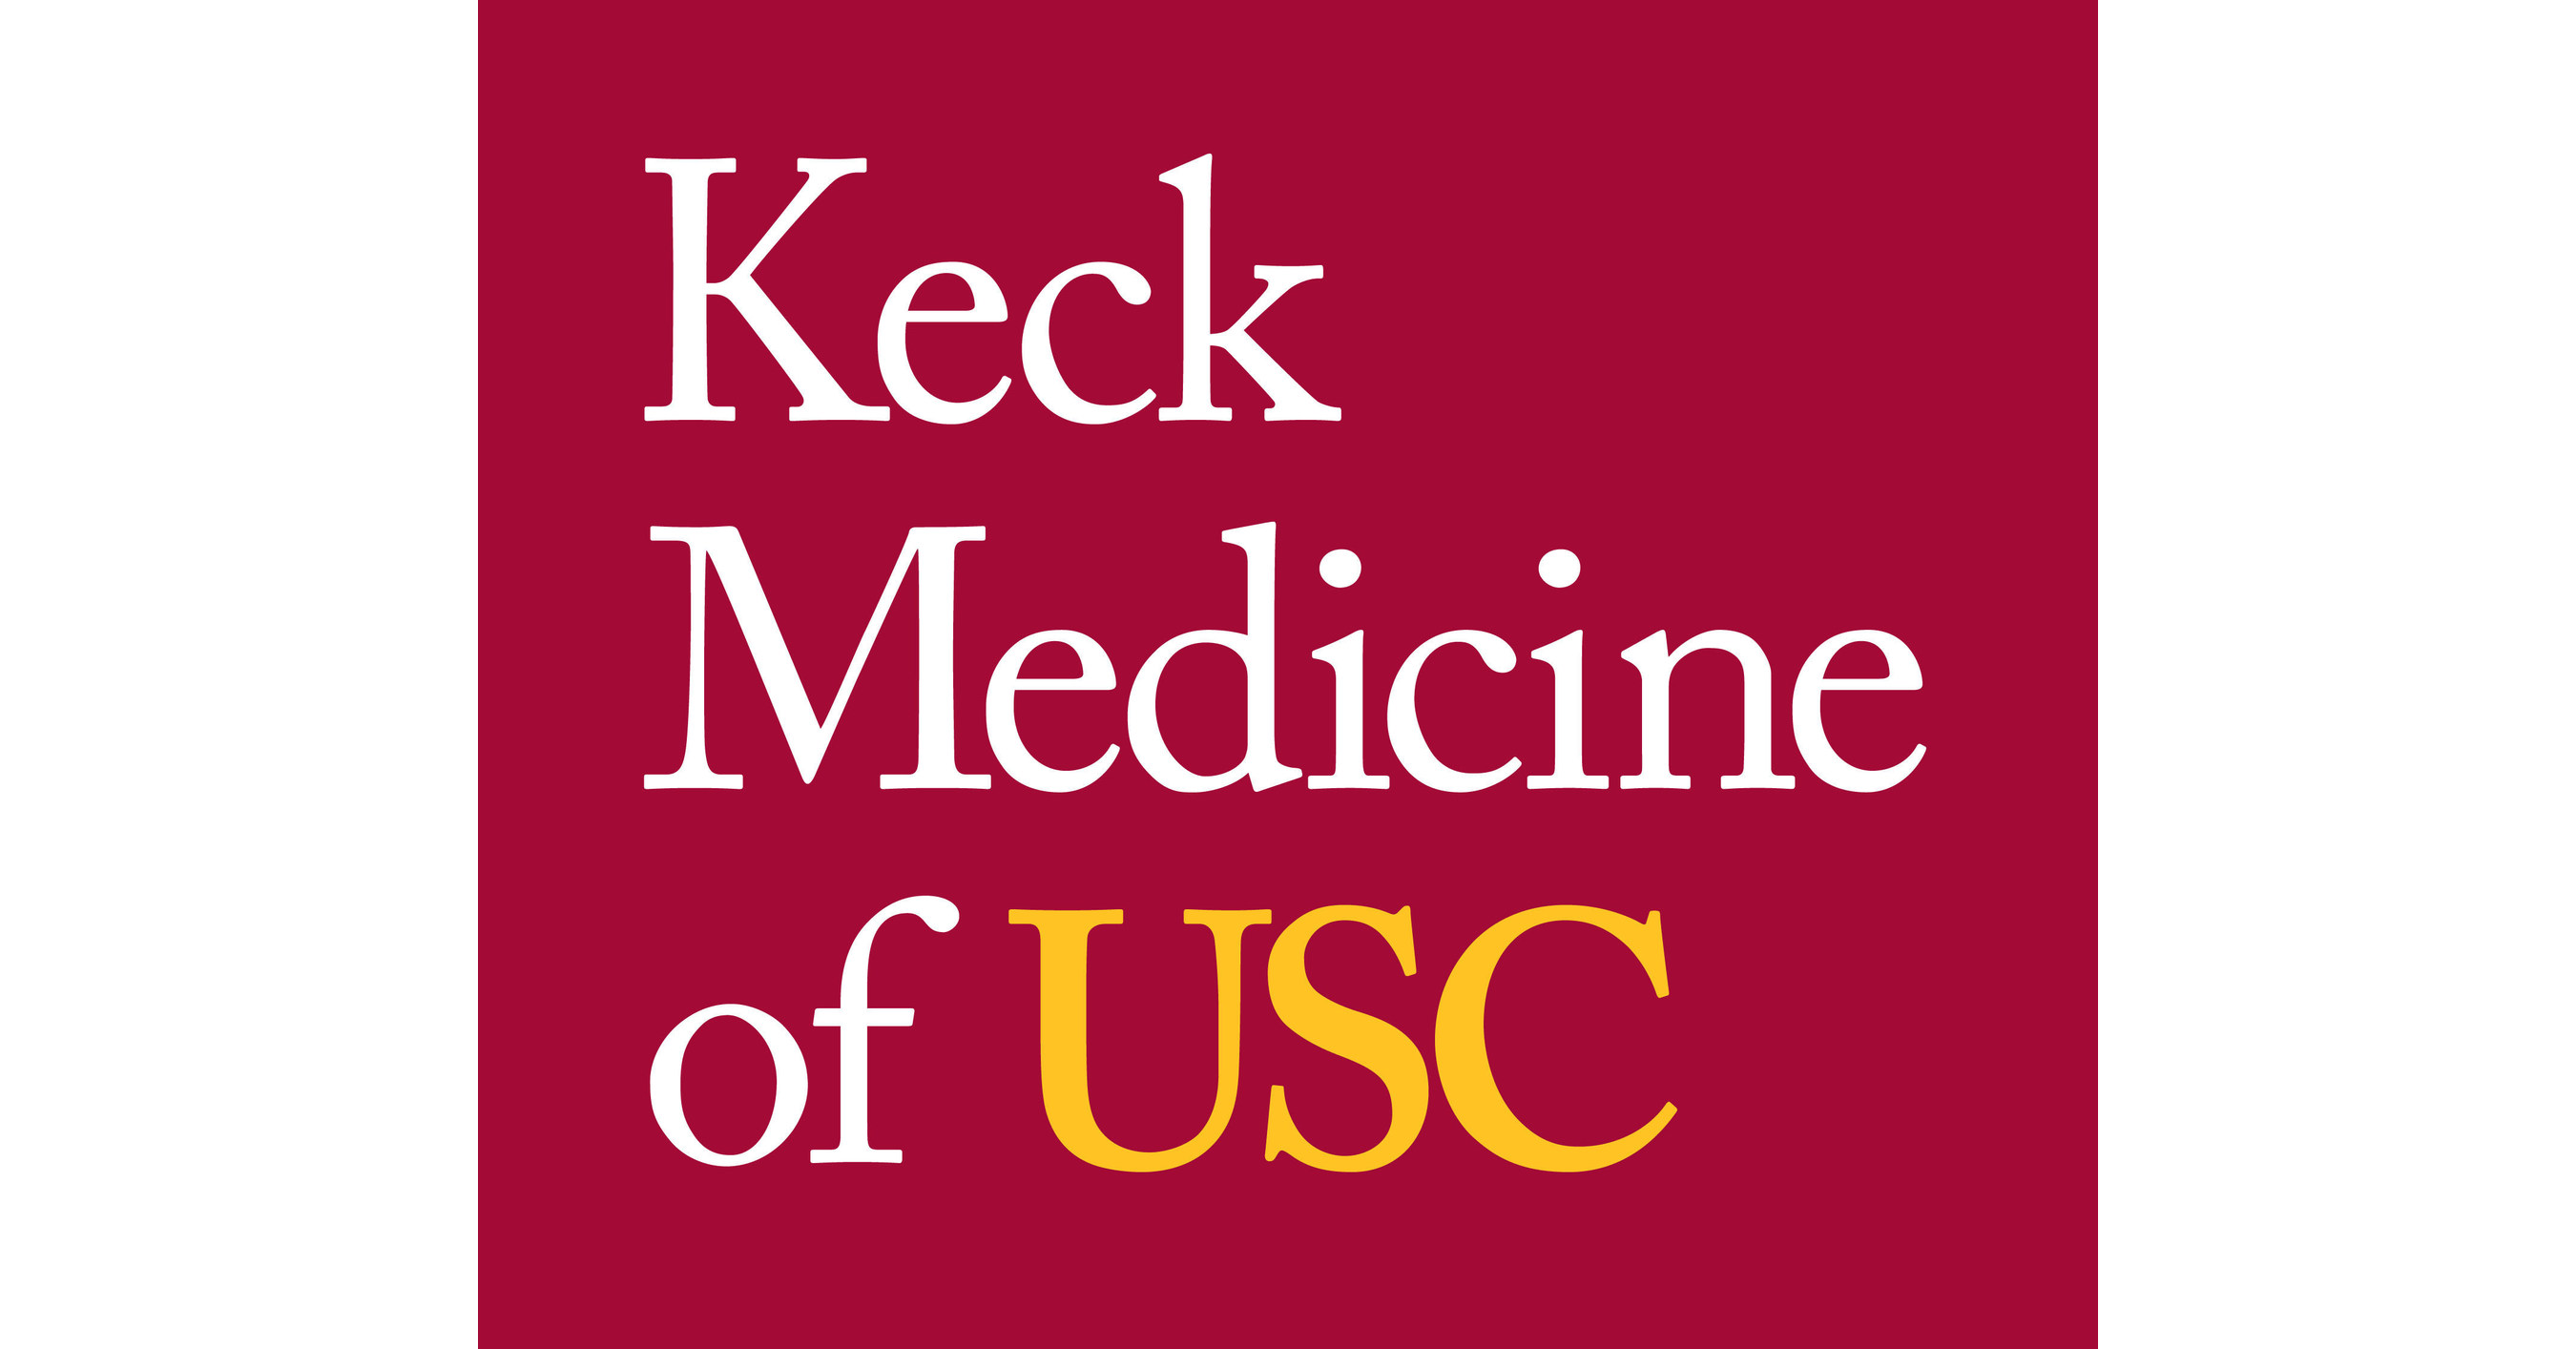 Keck Medicine of USC to open new ambulatory clinic in